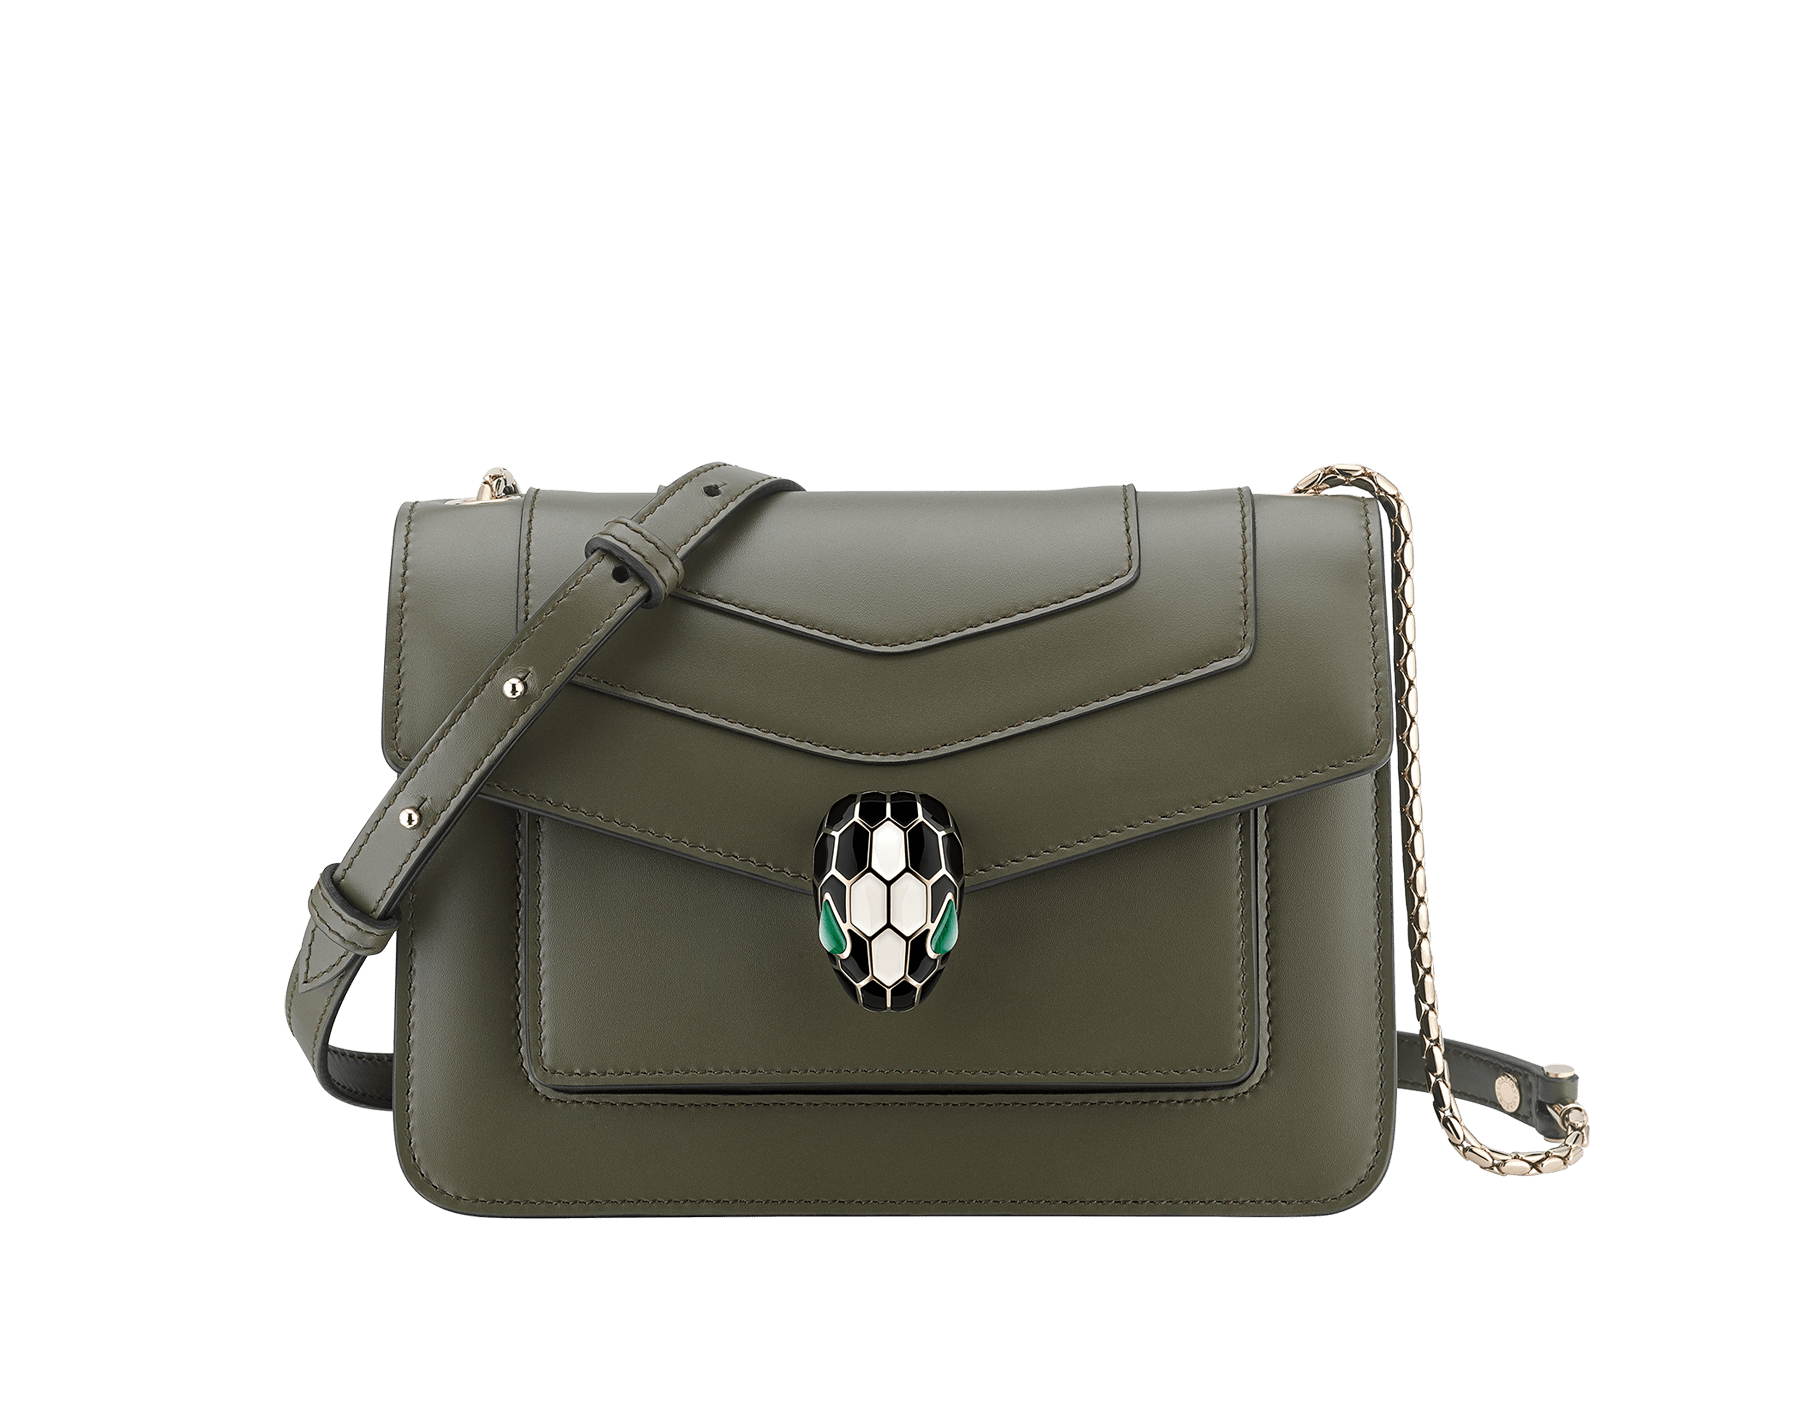 """Serpenti Forever"" crossbody bag in mimetic jade calf leather. Iconic snakehead closure in light gold plated brass enriched with black and white agate enamel and green malachite eyes. 289675 image 1"